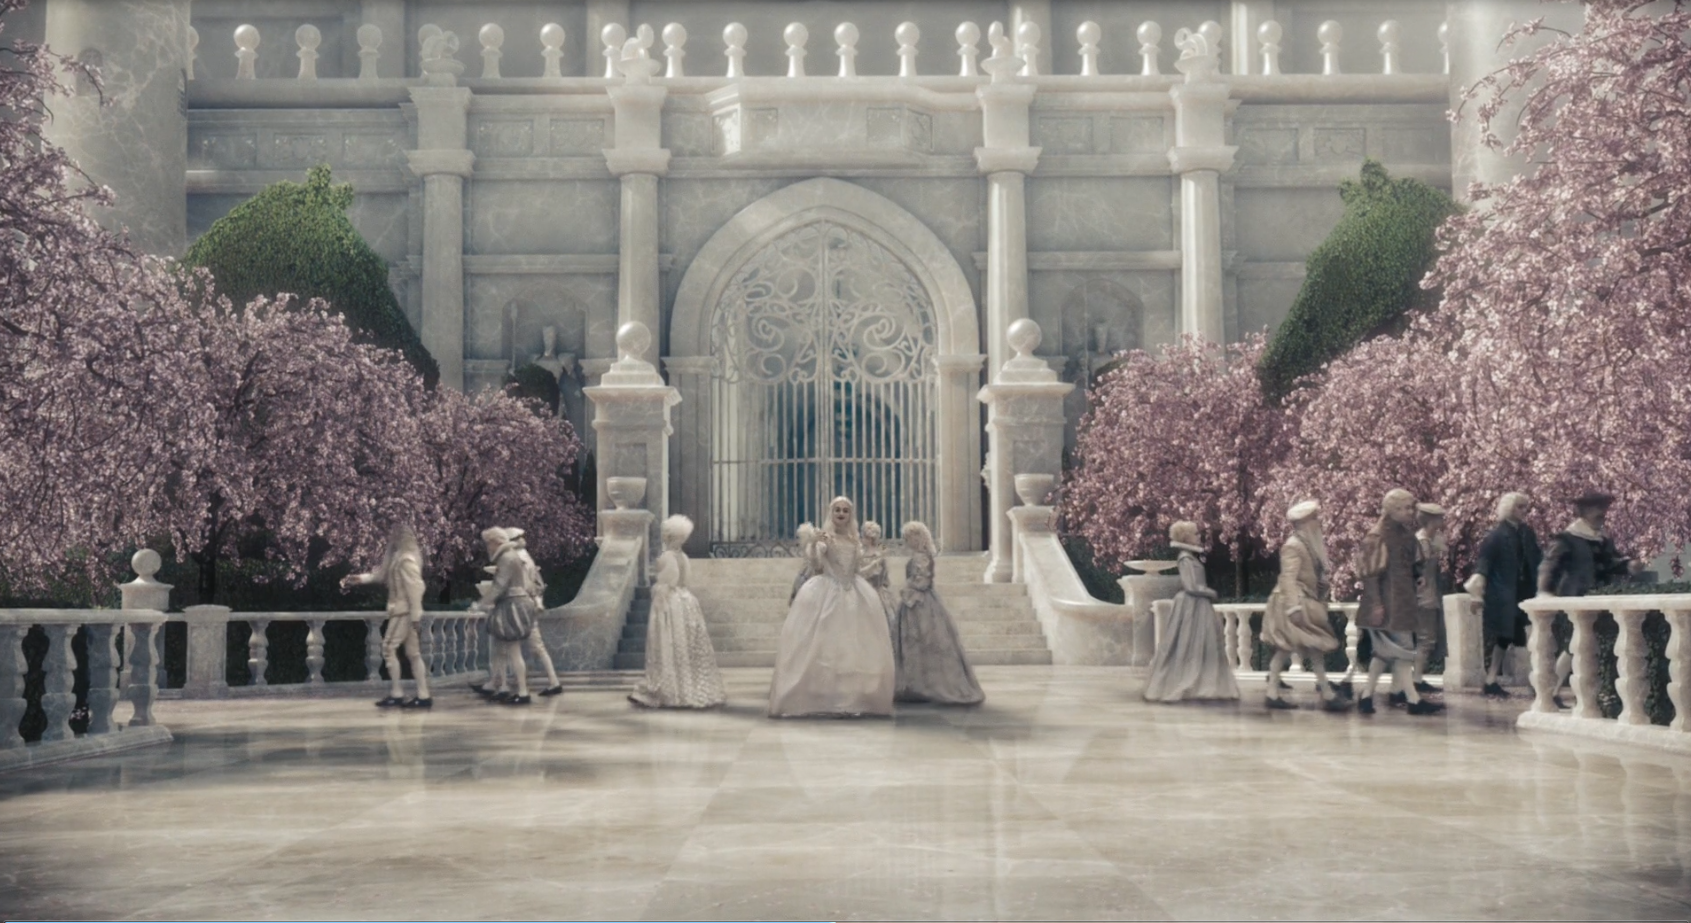 the white castle of the white queen. #alice in wonderland, #movie